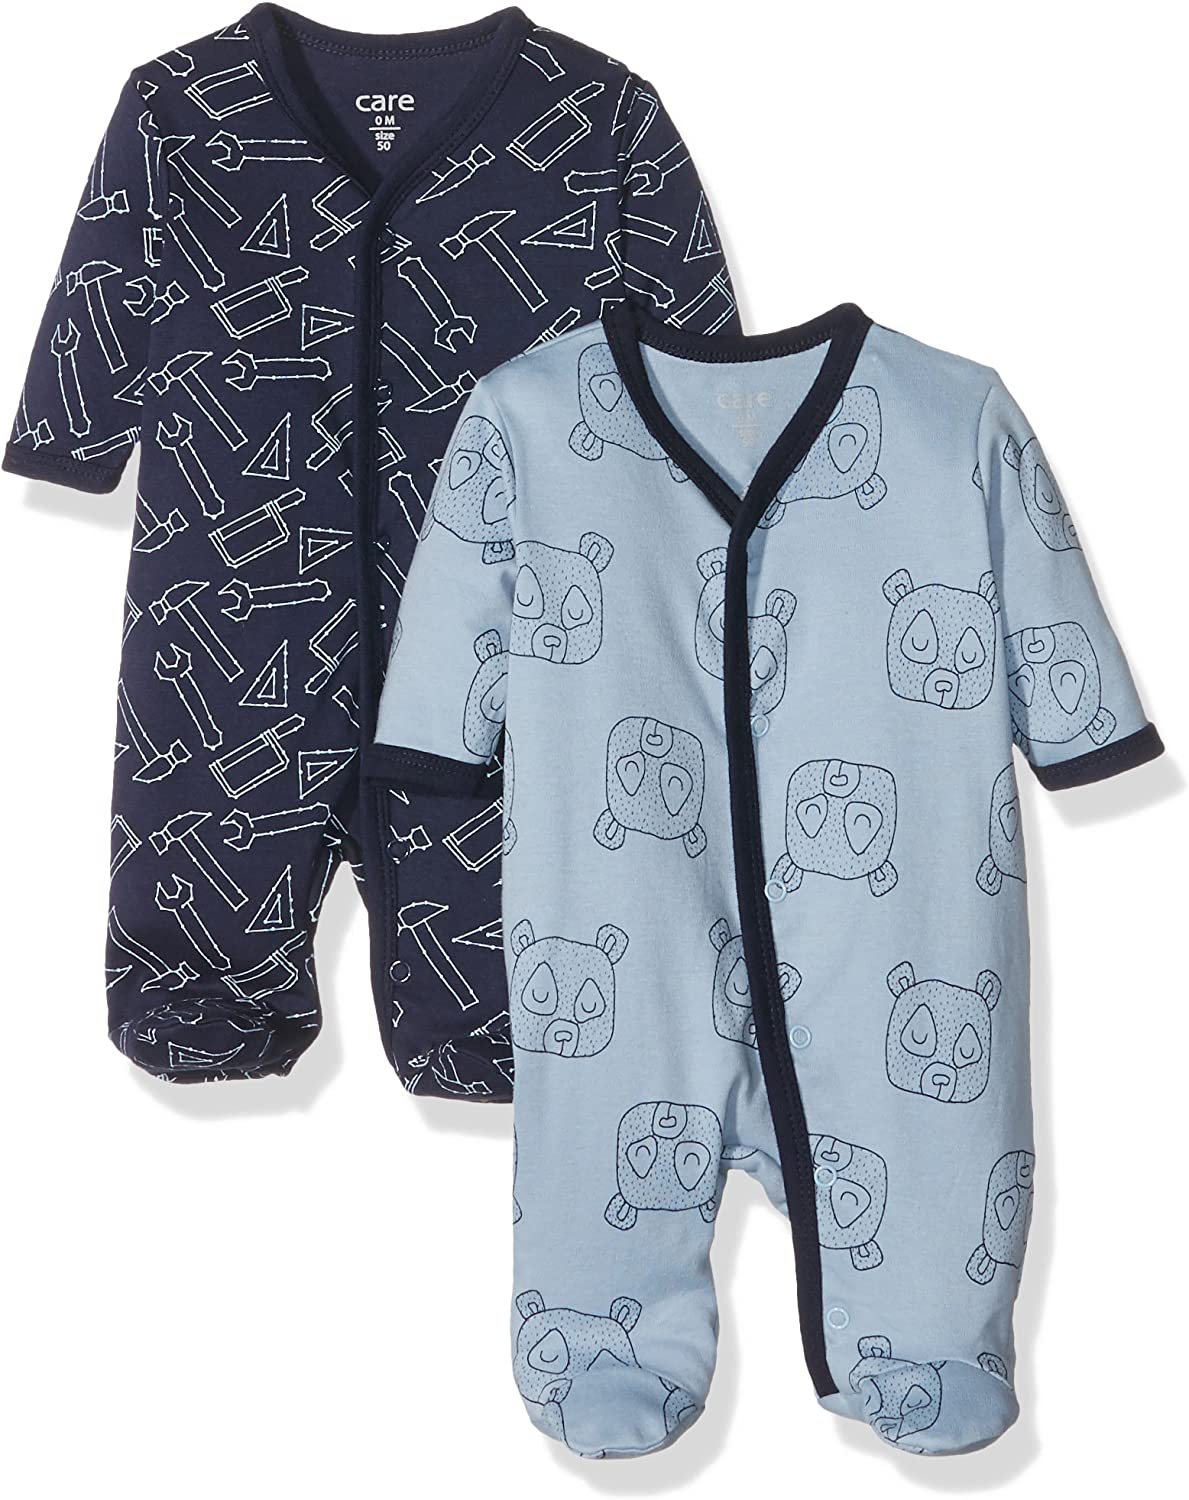 Amazon Exclusiva: Care Pijama para Bebé Niño, Pack de 2